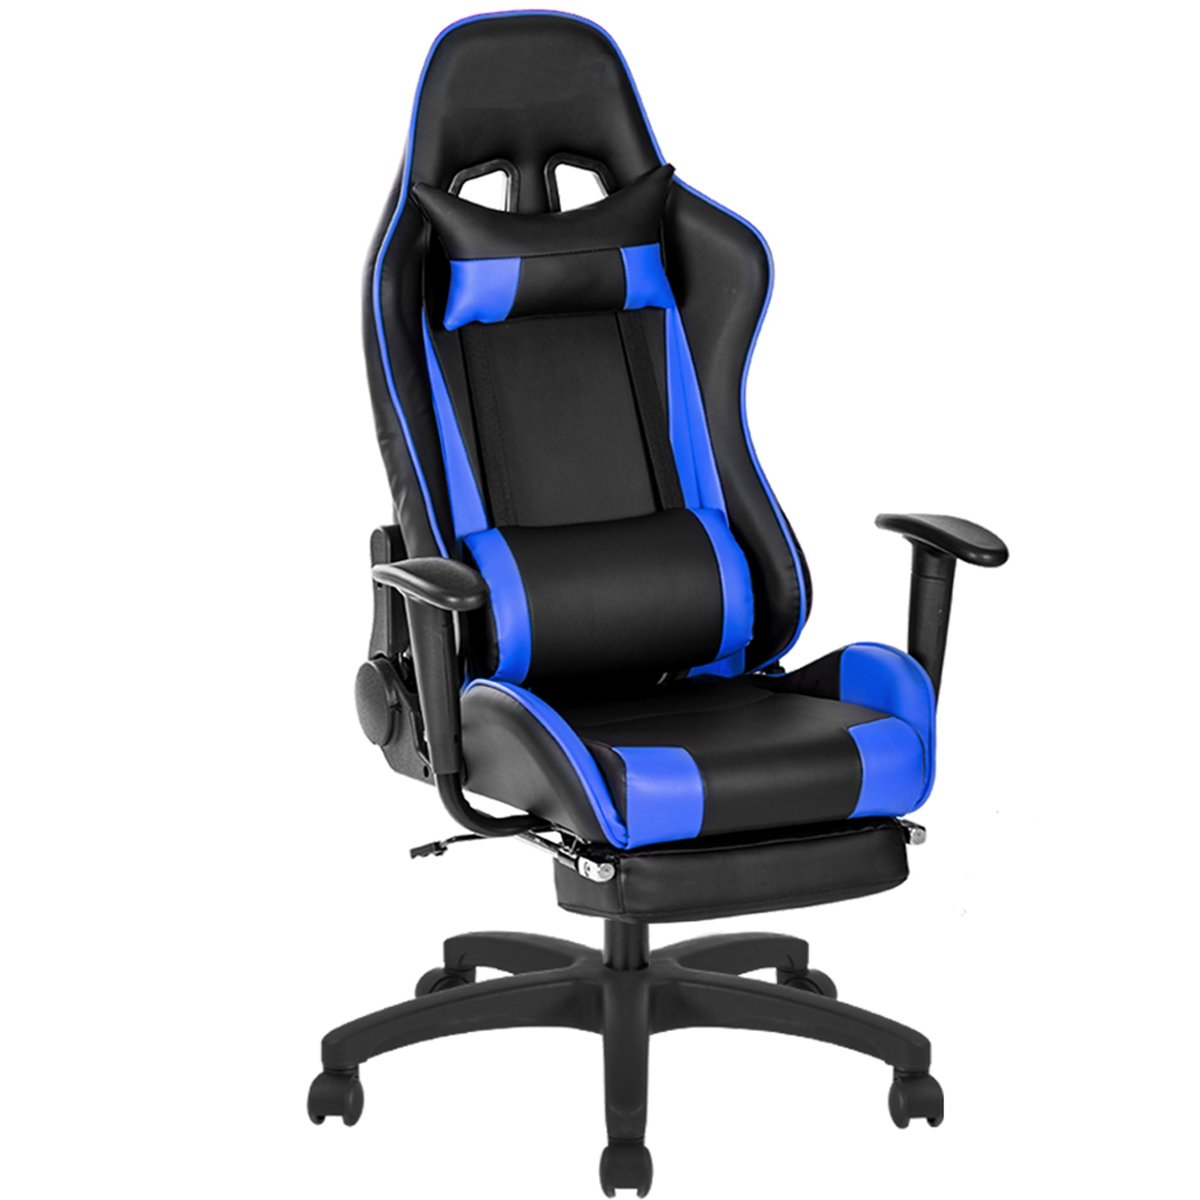 Game Chair 350lb Heavy Duty,JULYFOX Big and Tall Office Executive Chair Leather High Back Ergonomic 20 inch Extra Wide Lumbar Support Neck Pillow Upholstered Recliner Desk Chair Black and Blue C400-Black and Blue